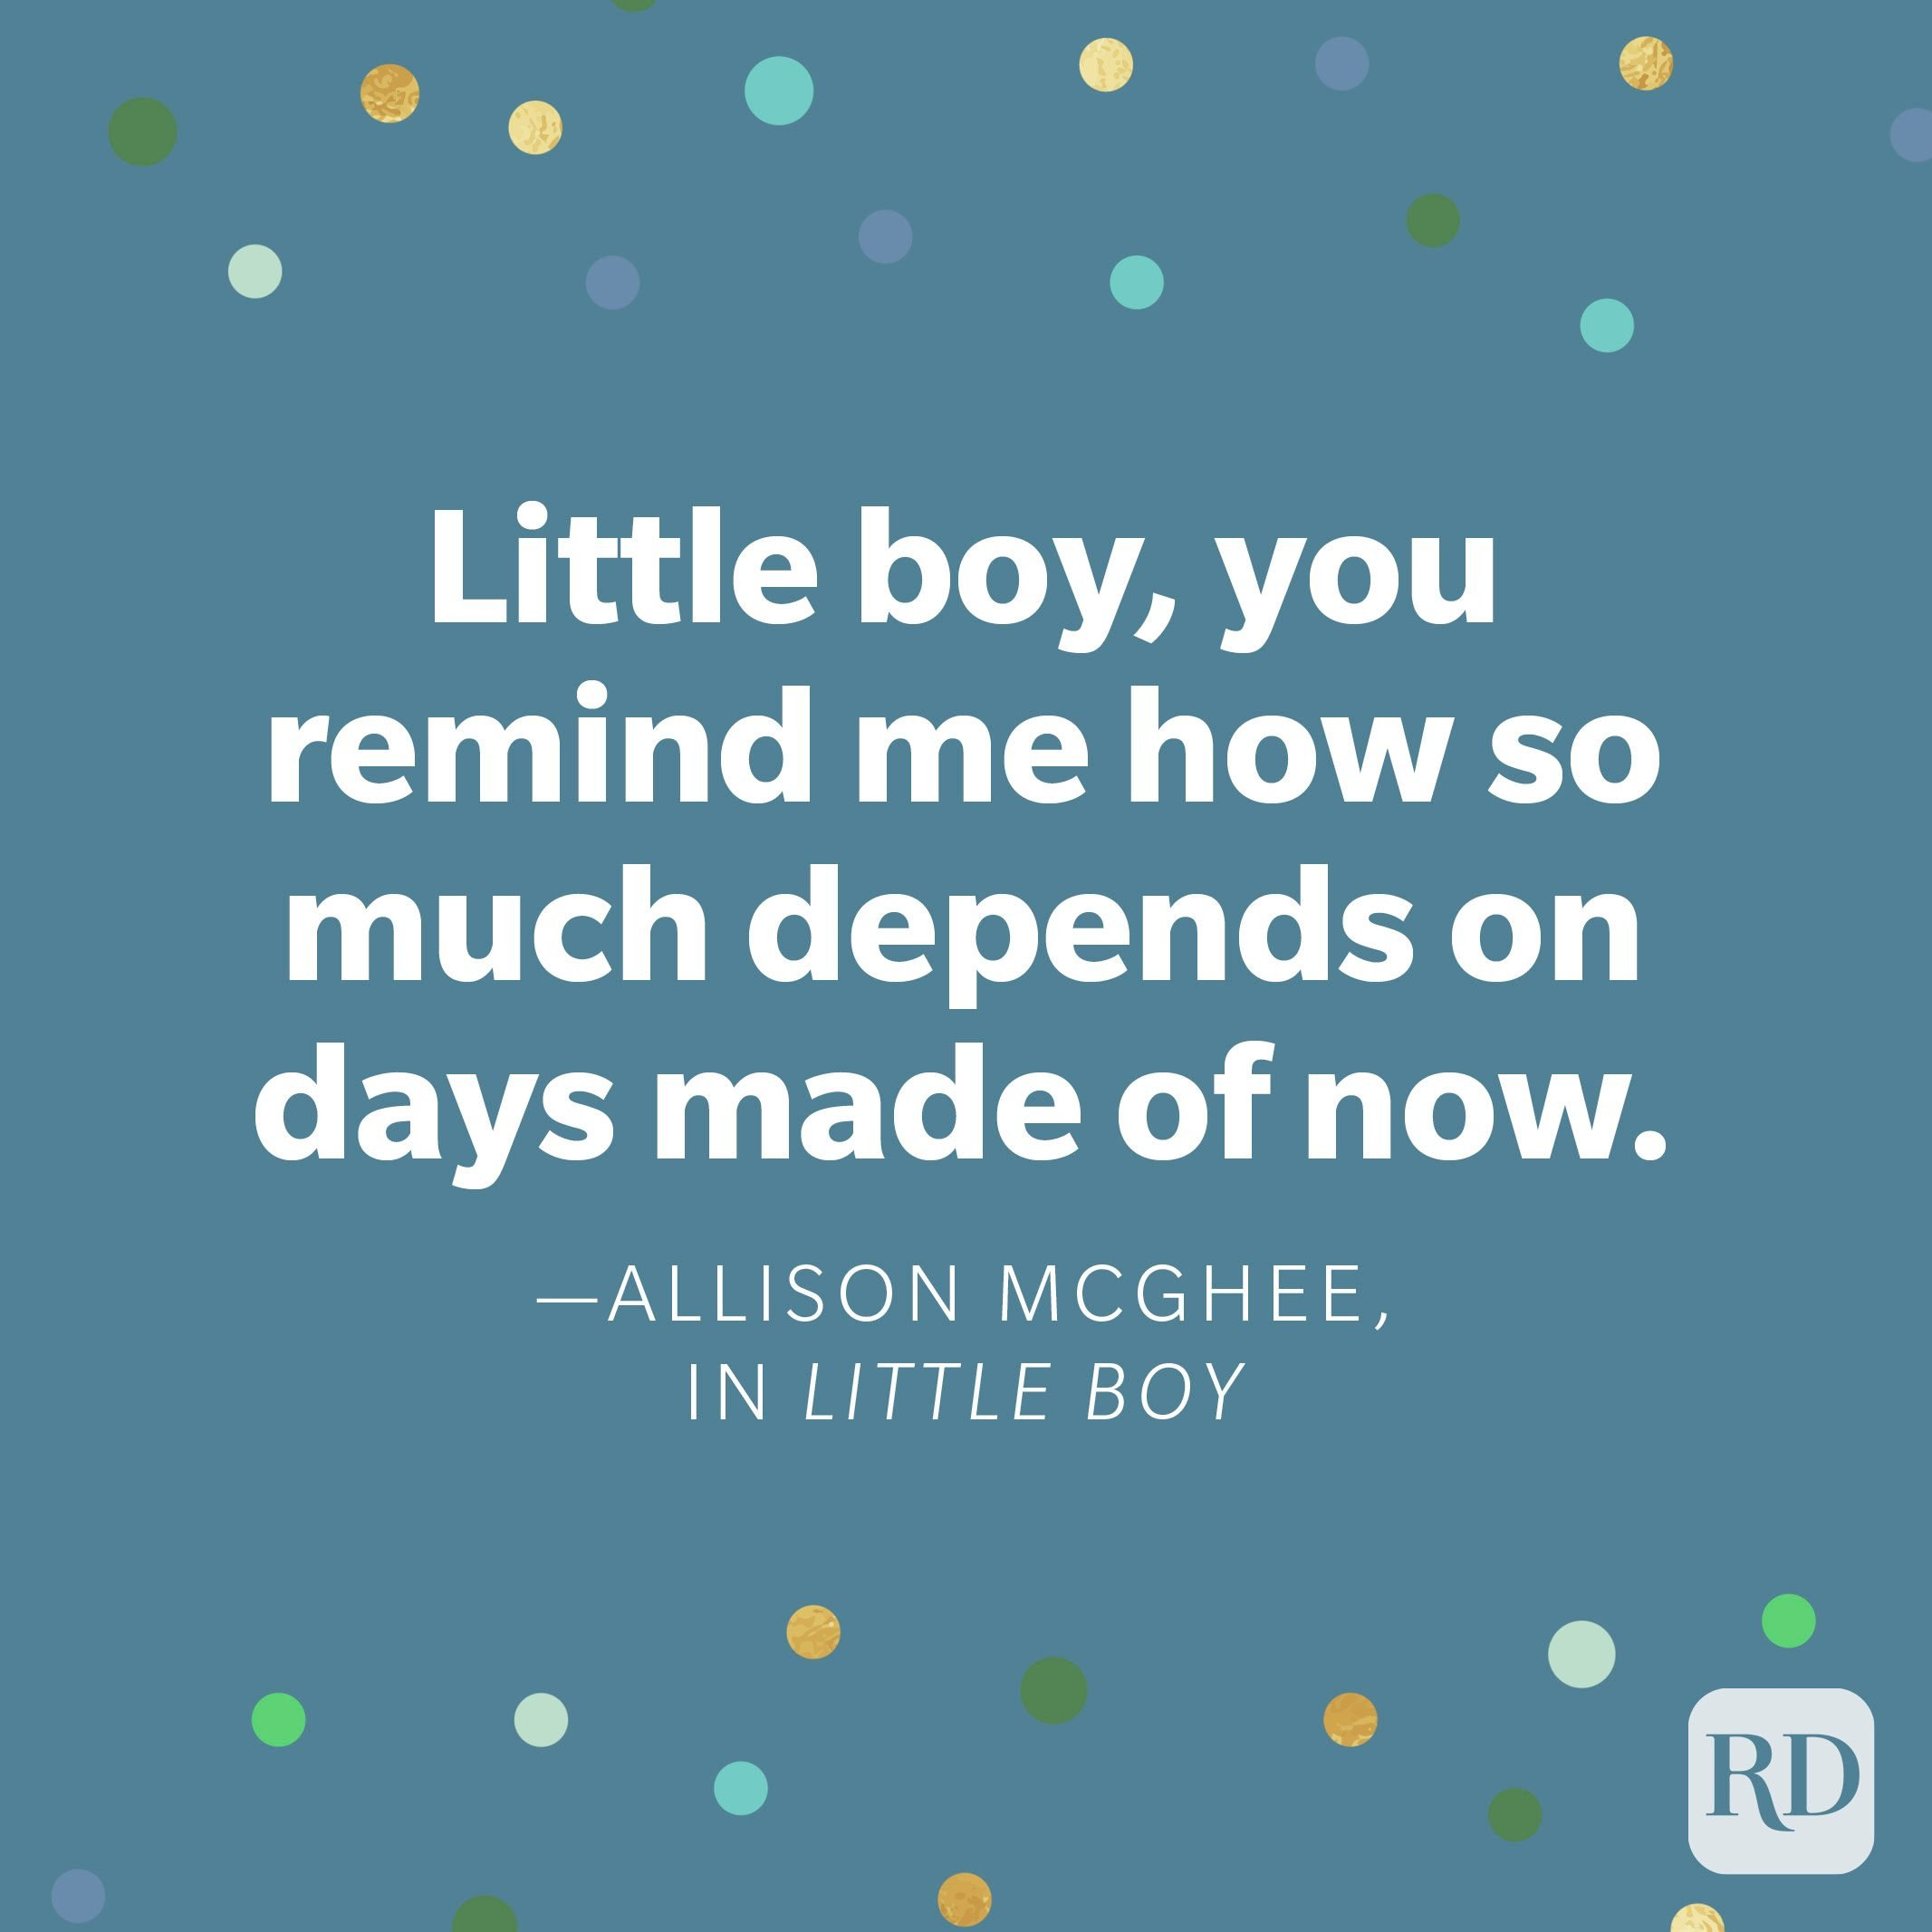 """Little boy, you remind me how so much depends on days made of now."" —Allison McGhee, in Little Boy"